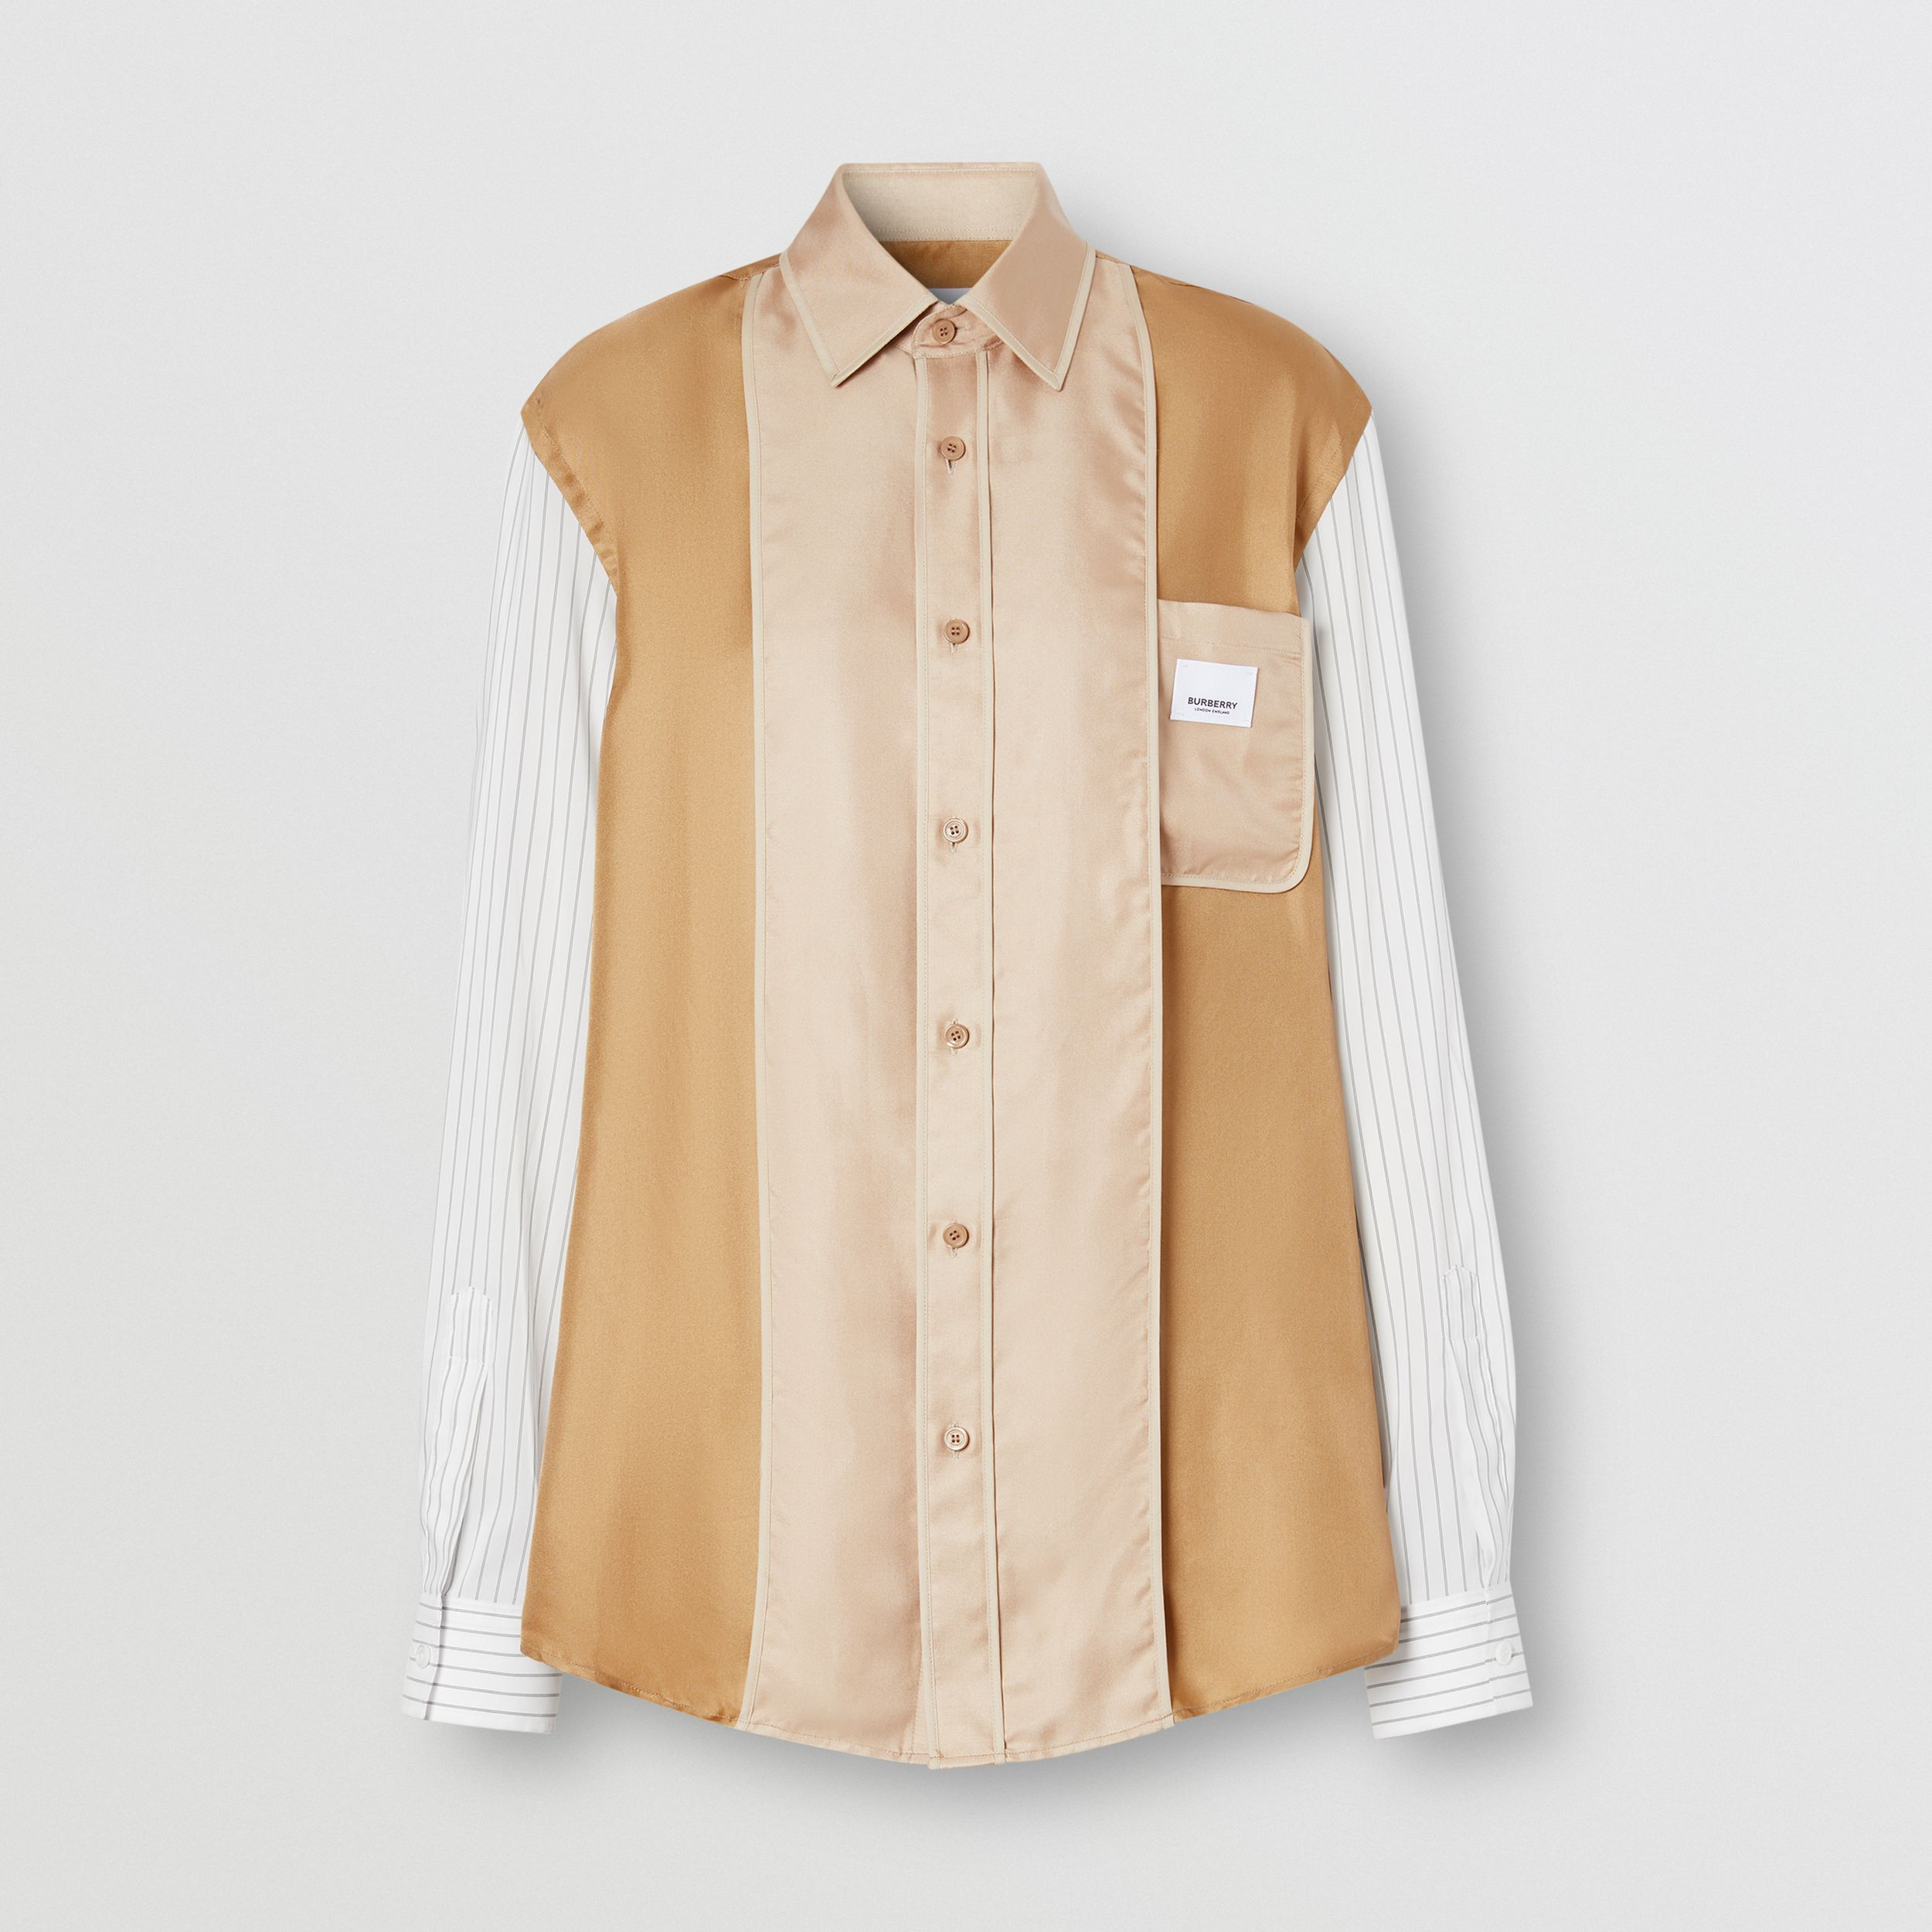 Logo Appliqué Pinstriped Sleeve Silk Shirt in Camel - Women | Burberry United States - 2